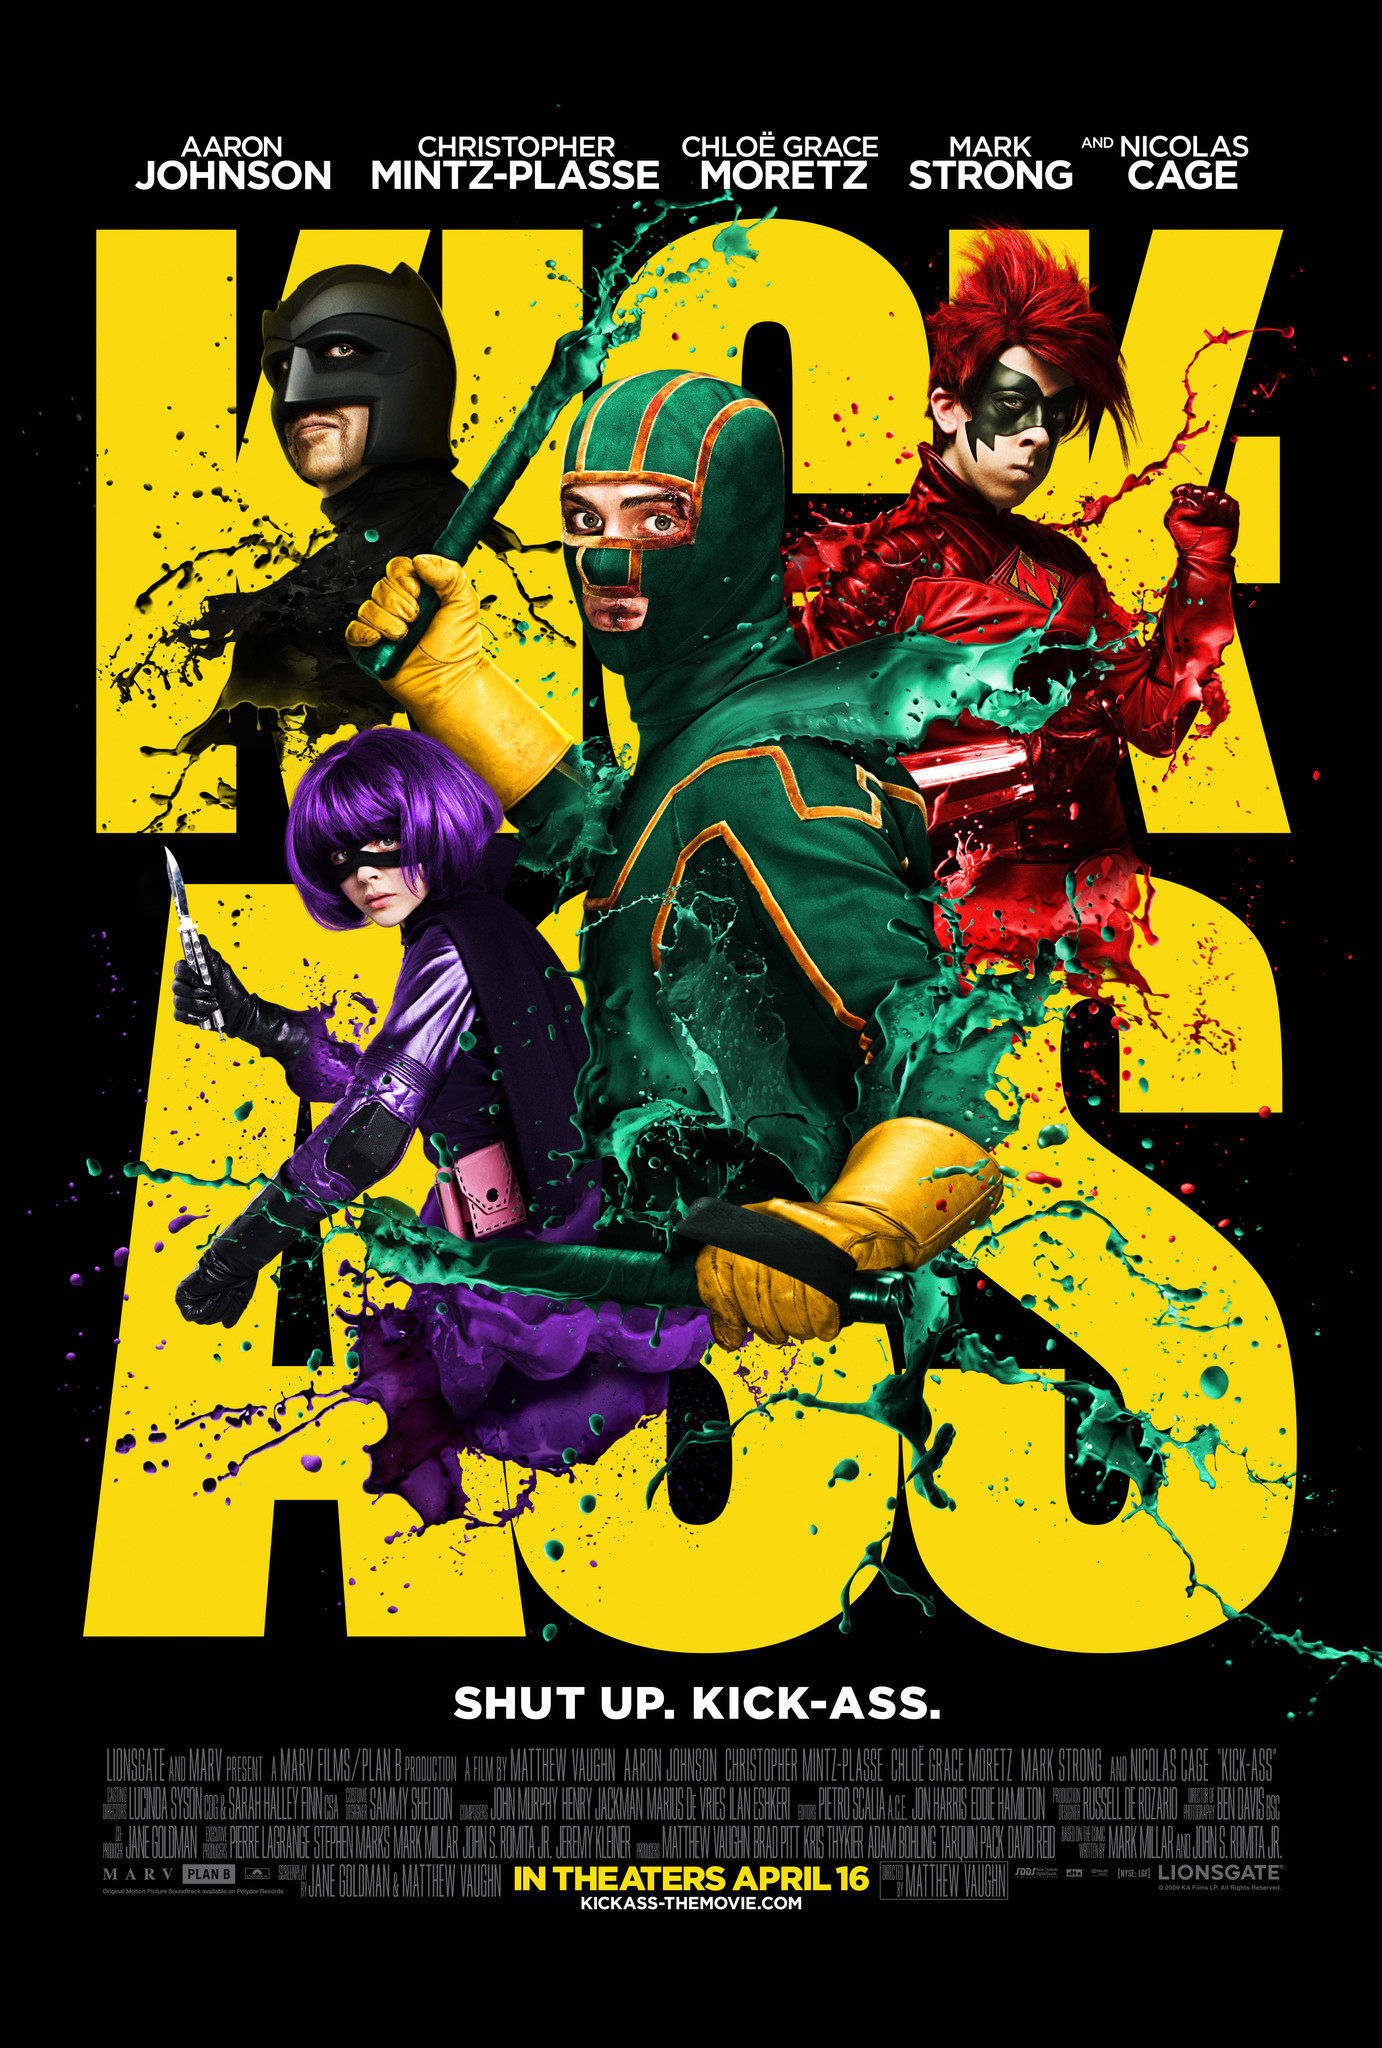 Kick Ass (2010) - Directed By: Matthew VaughnStarring: Aaron Taylor-Johnson, Nicolas Cage, Chloë Grace Moretz, Mark Strong, Christopher Mintz-PlasseRated: RRun Time: 1h 57mTMM Score: 3 Stars (I liked it)Strengths: High Concept, Nicolas Cage, FunWeakness: Acting